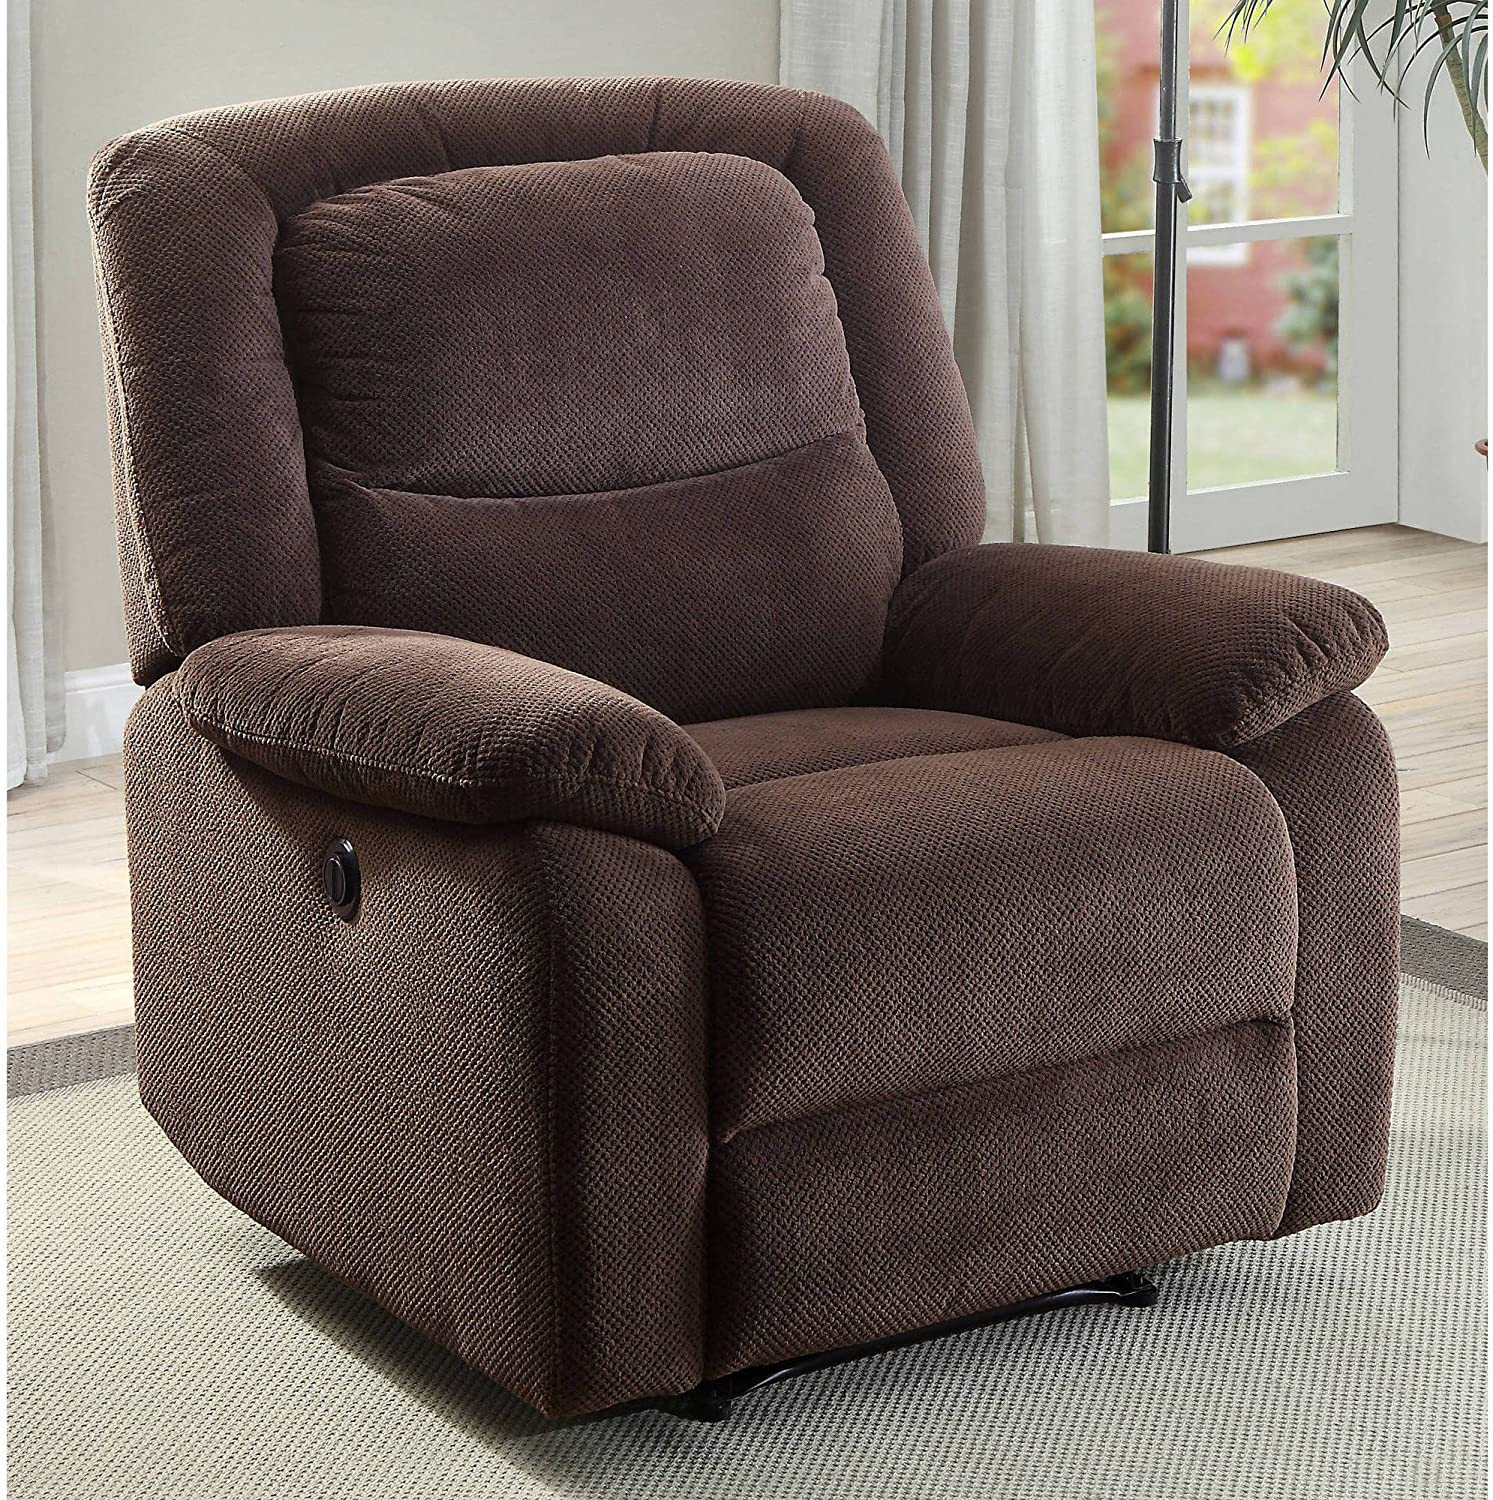 Astonishing Best Recliners For Elderly Reviews Top For Seniors In Andrewgaddart Wooden Chair Designs For Living Room Andrewgaddartcom